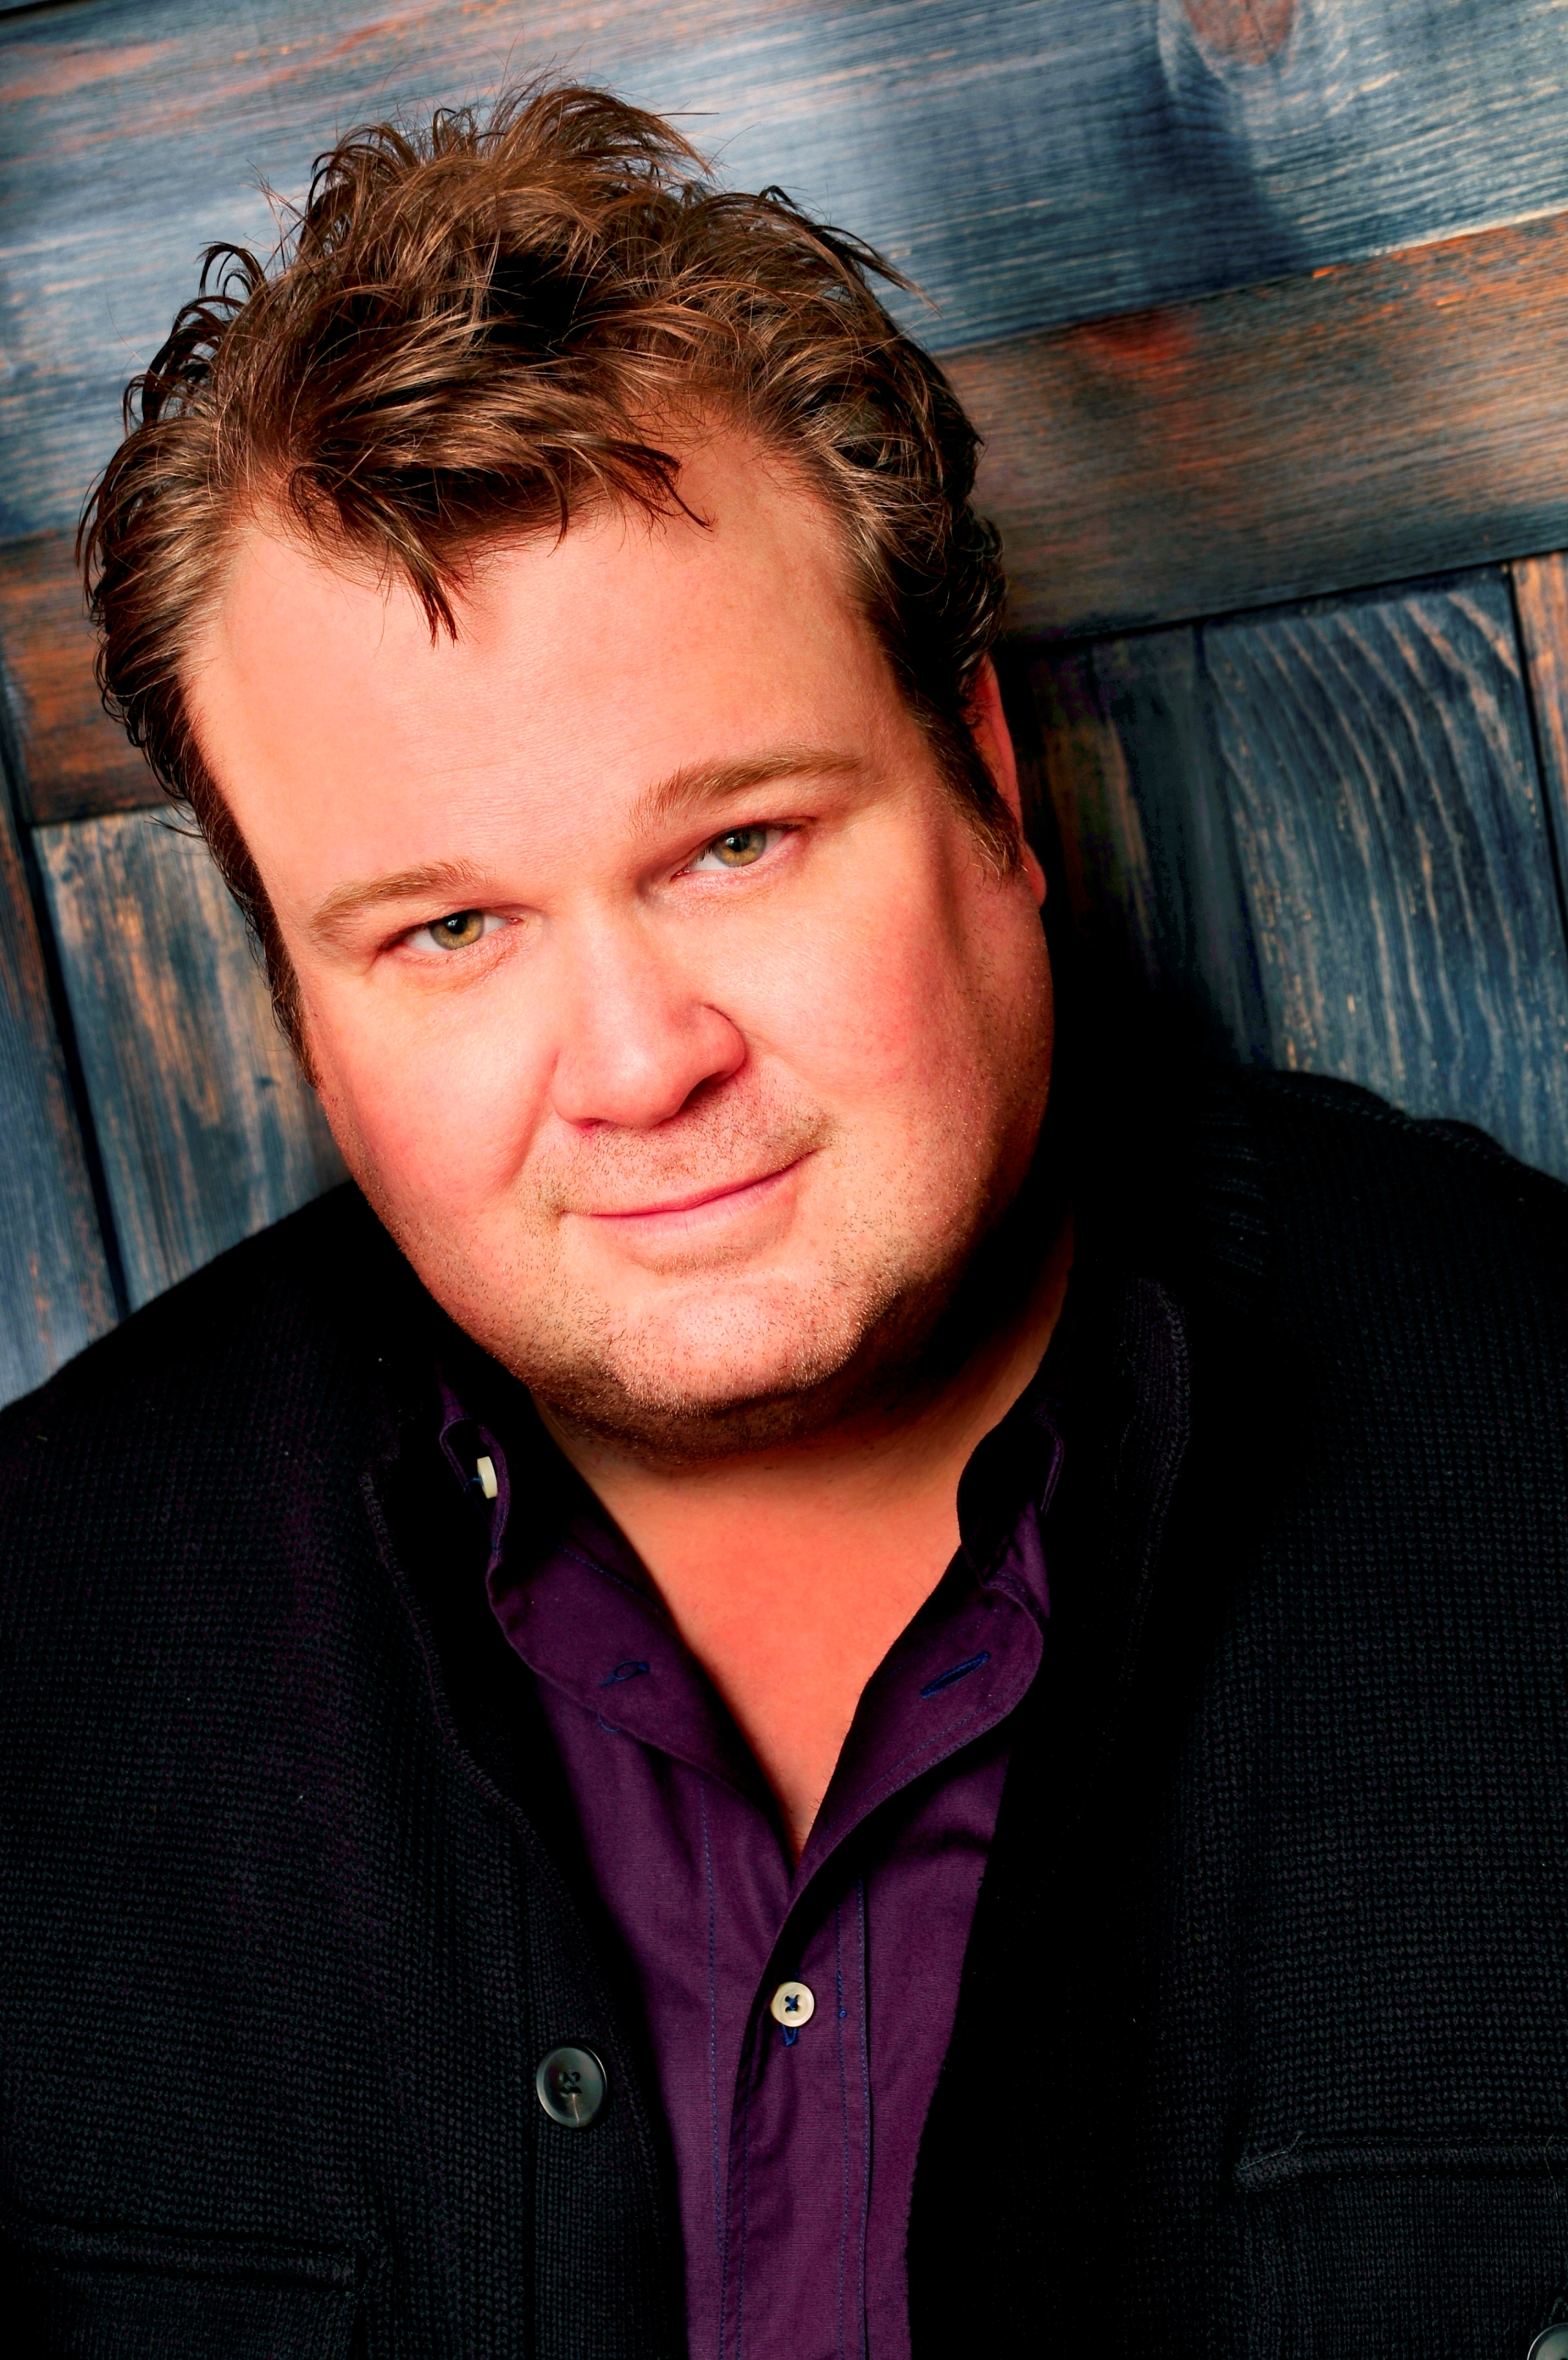 Eric stonestreet west wing wiki nbc martin sheen for Eric stonestreet house